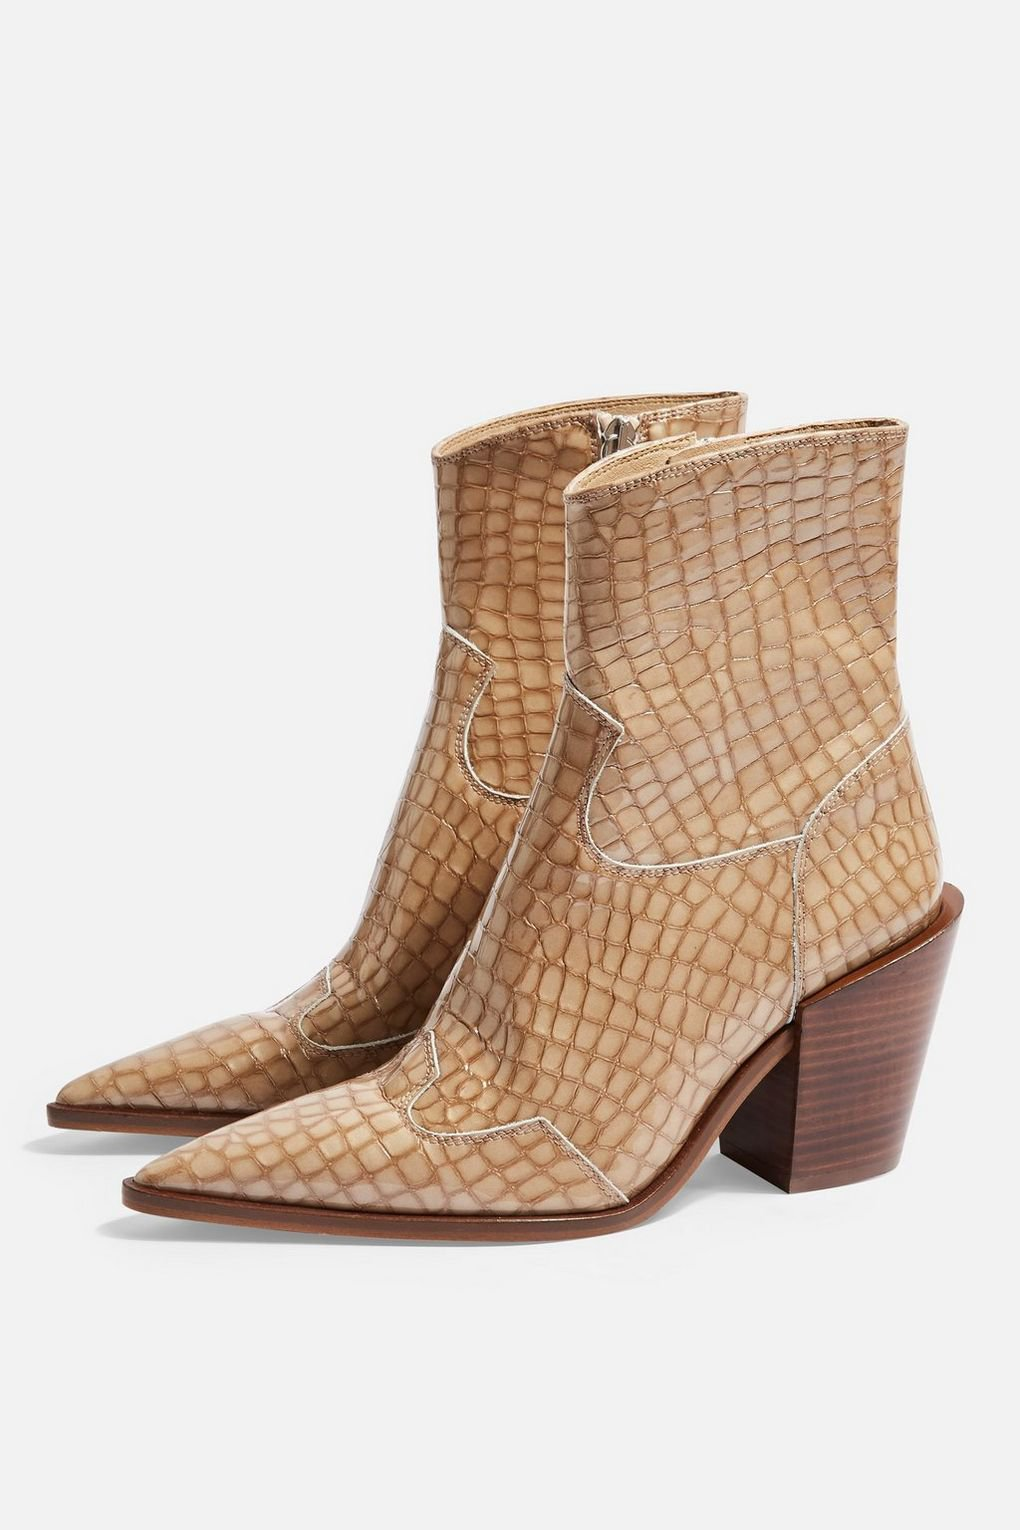 HOWDIE Western Boots - Shoes- Topshop USA